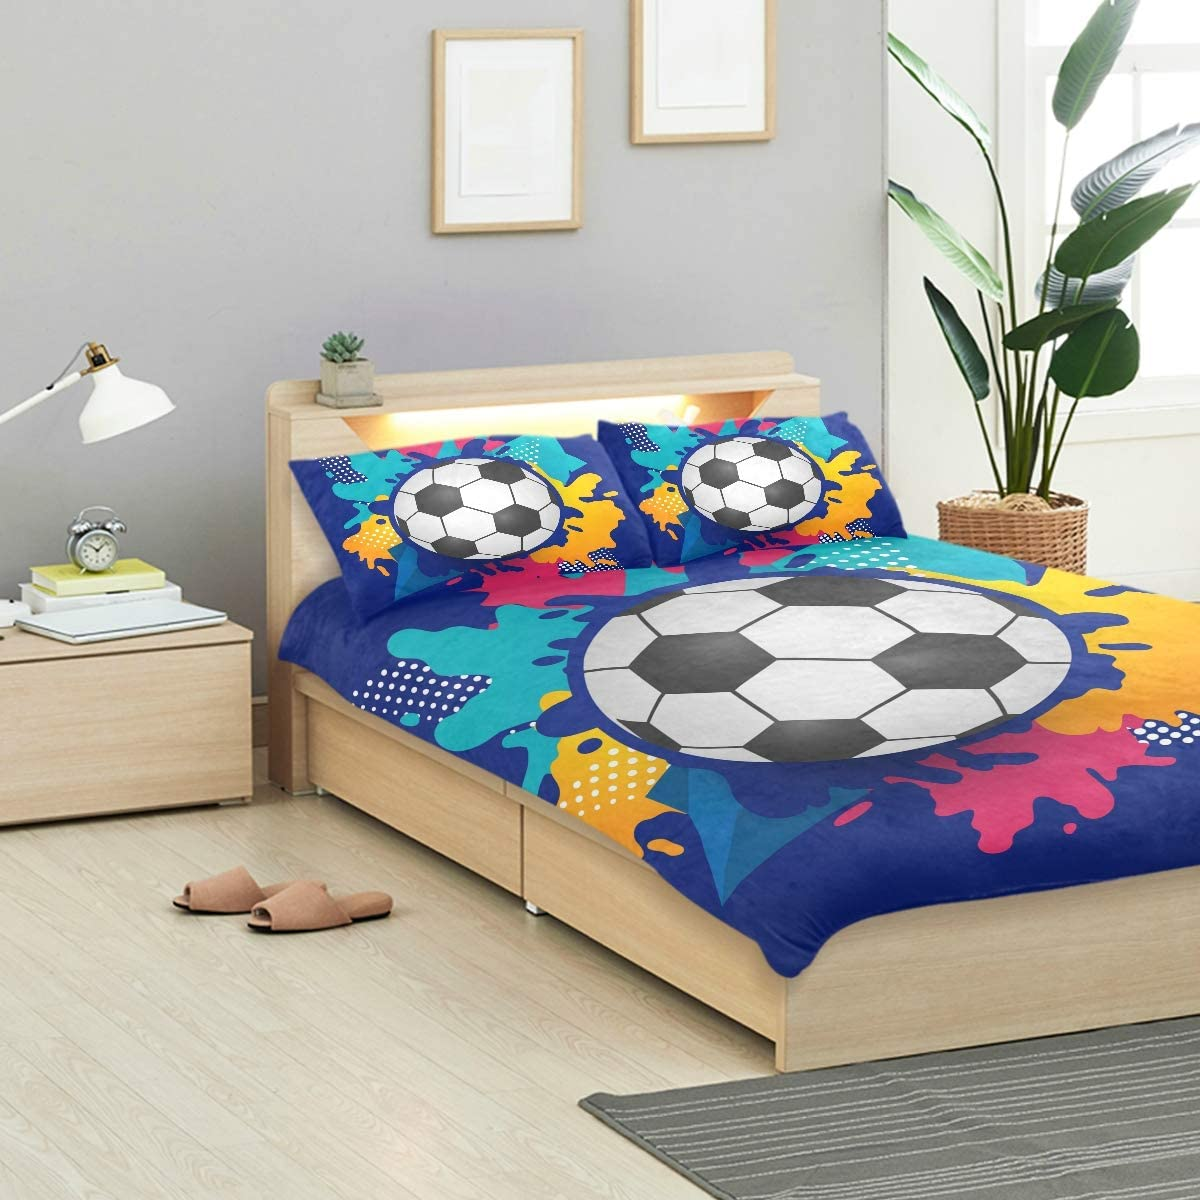 FOLPPLY Soccer Ball 3 Piece Bedding Set Twin Size 66x90in, Decorative Duvet Cover with 2 Pillow Shams for Boys Girls Teens Adults